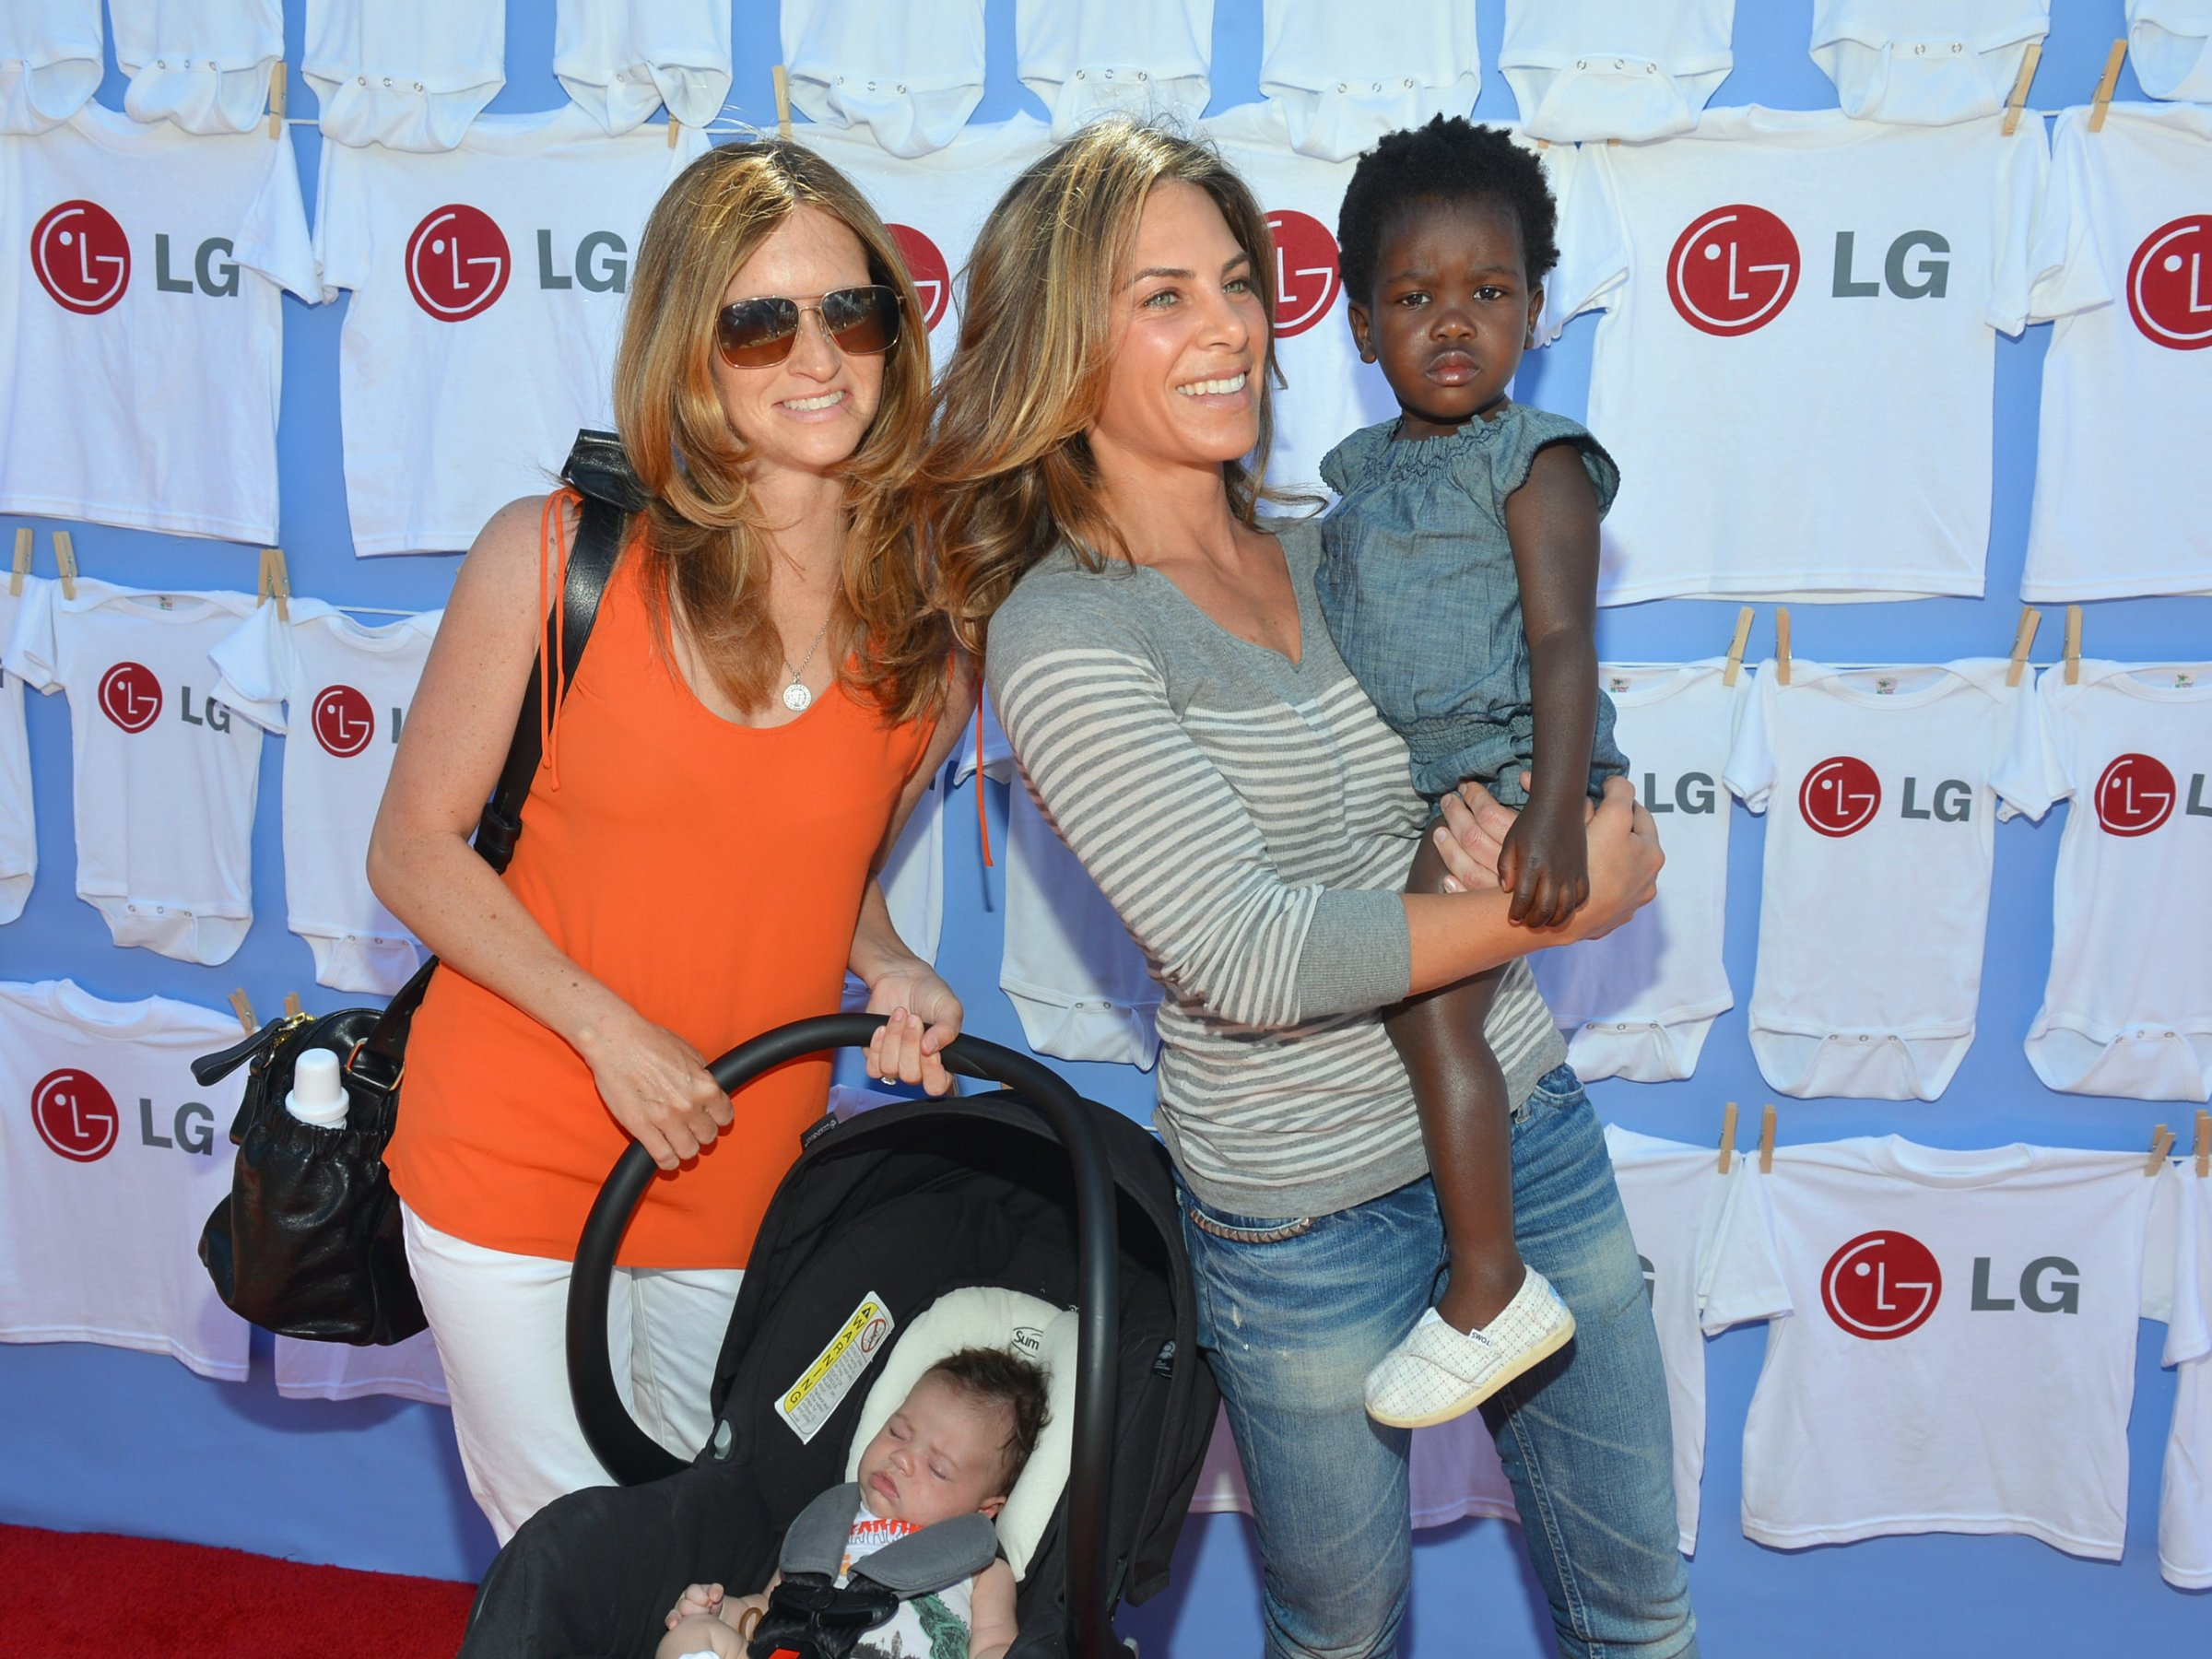 Jillian Michaels and family